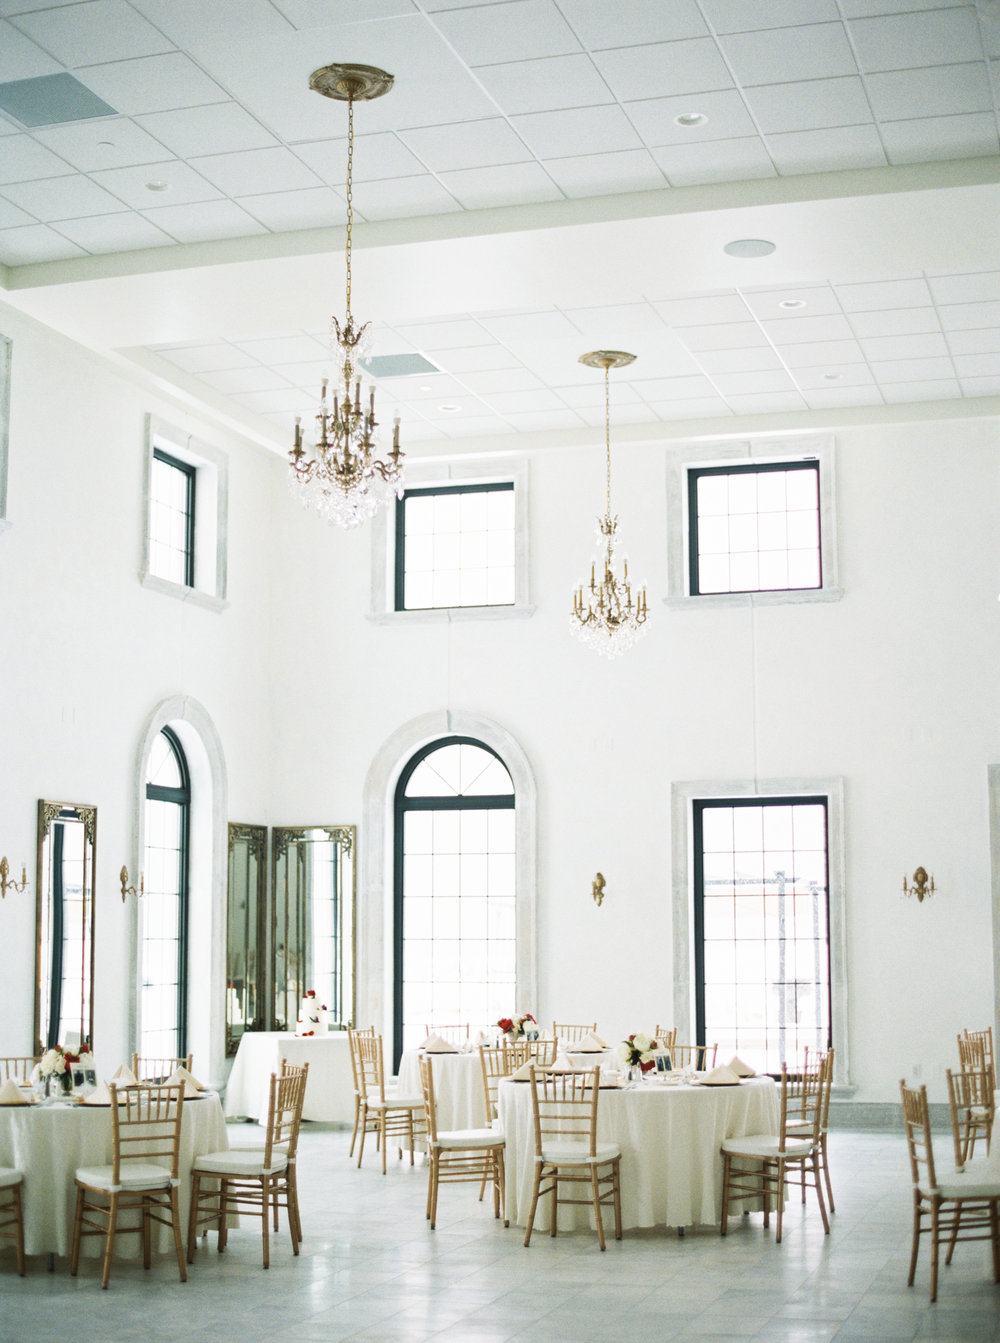 For a indoor, elegant wedding; Chateau is the place to be. It has plenty of indoor space, AMAZING food and great staff. I especially love the old school band performing smooth covers of Frank Sinatra, Dean Martin and other oldies favorites. Tons of natural indoor light with a french theme, plenty of parking and a outdoor patio space. http://chateaueagle.com/